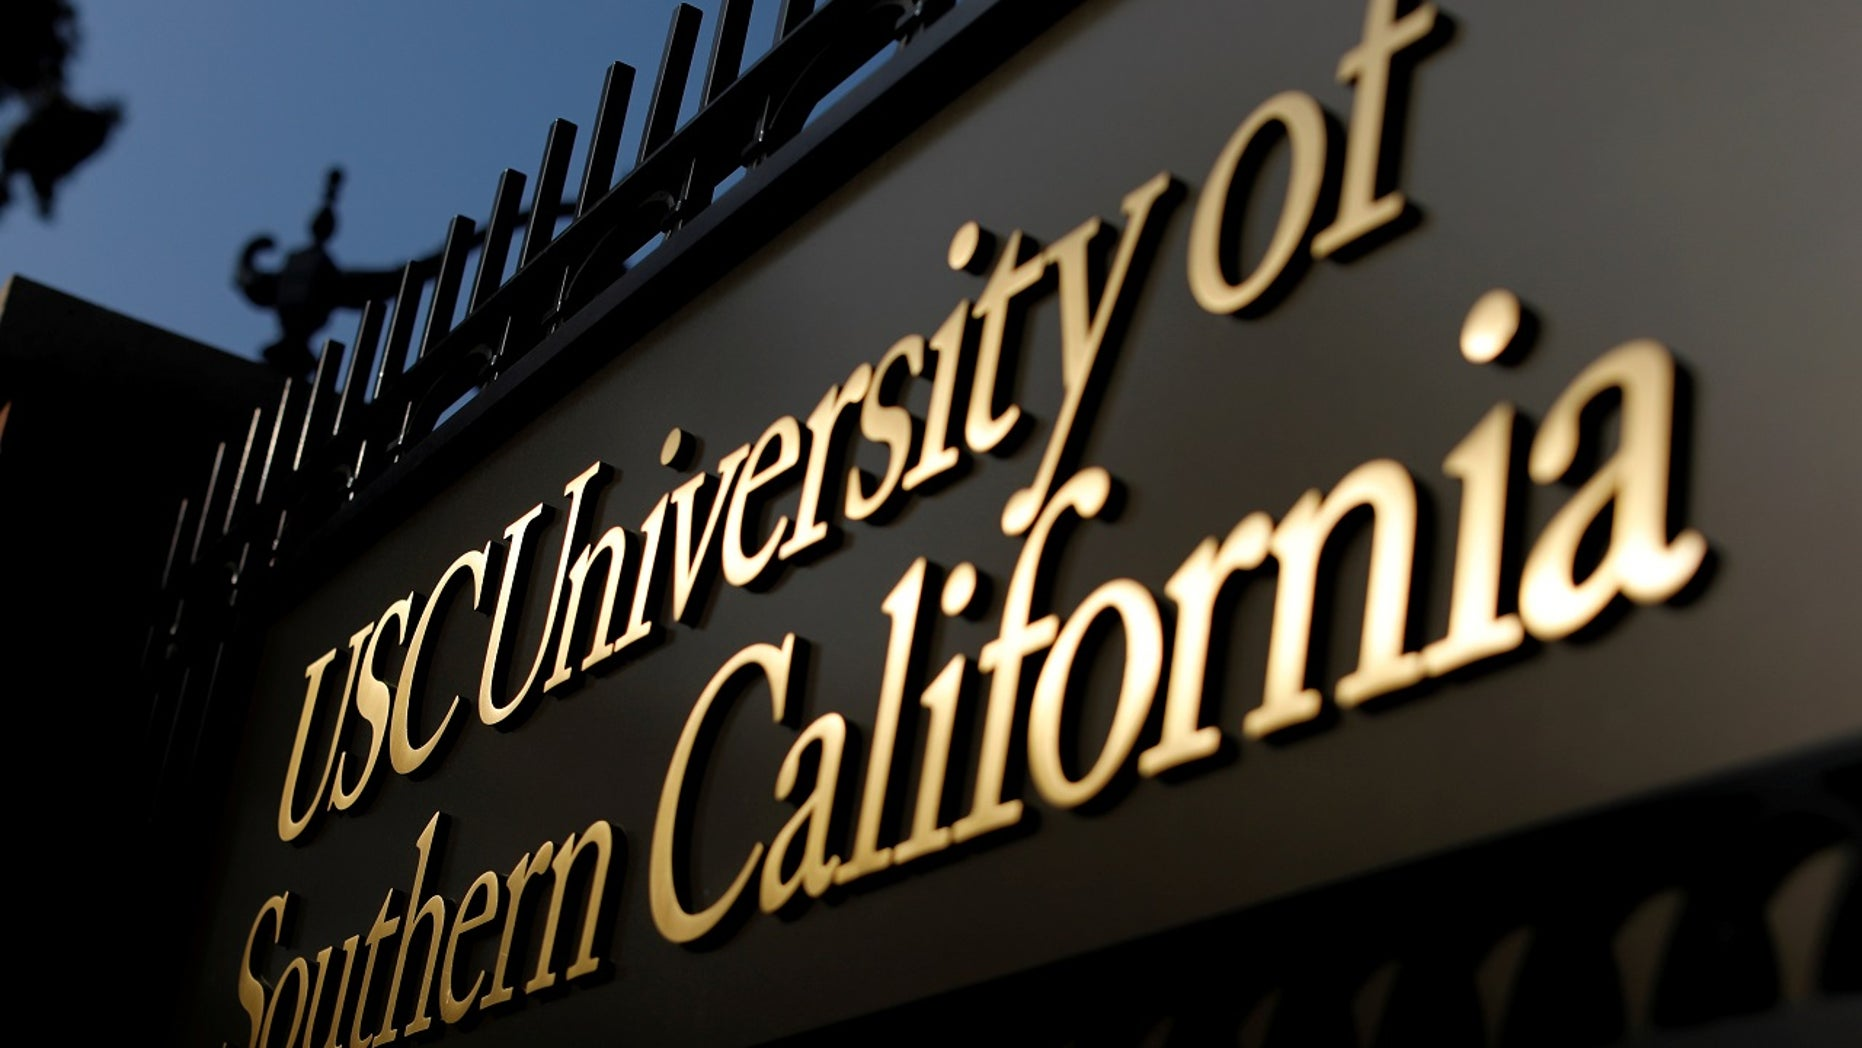 Over 50 former and current University of Southern California students sued the school on Monday for mishandling complaints that a longtime gynecologist engaged in inappropriate behavior during pelvic exams.